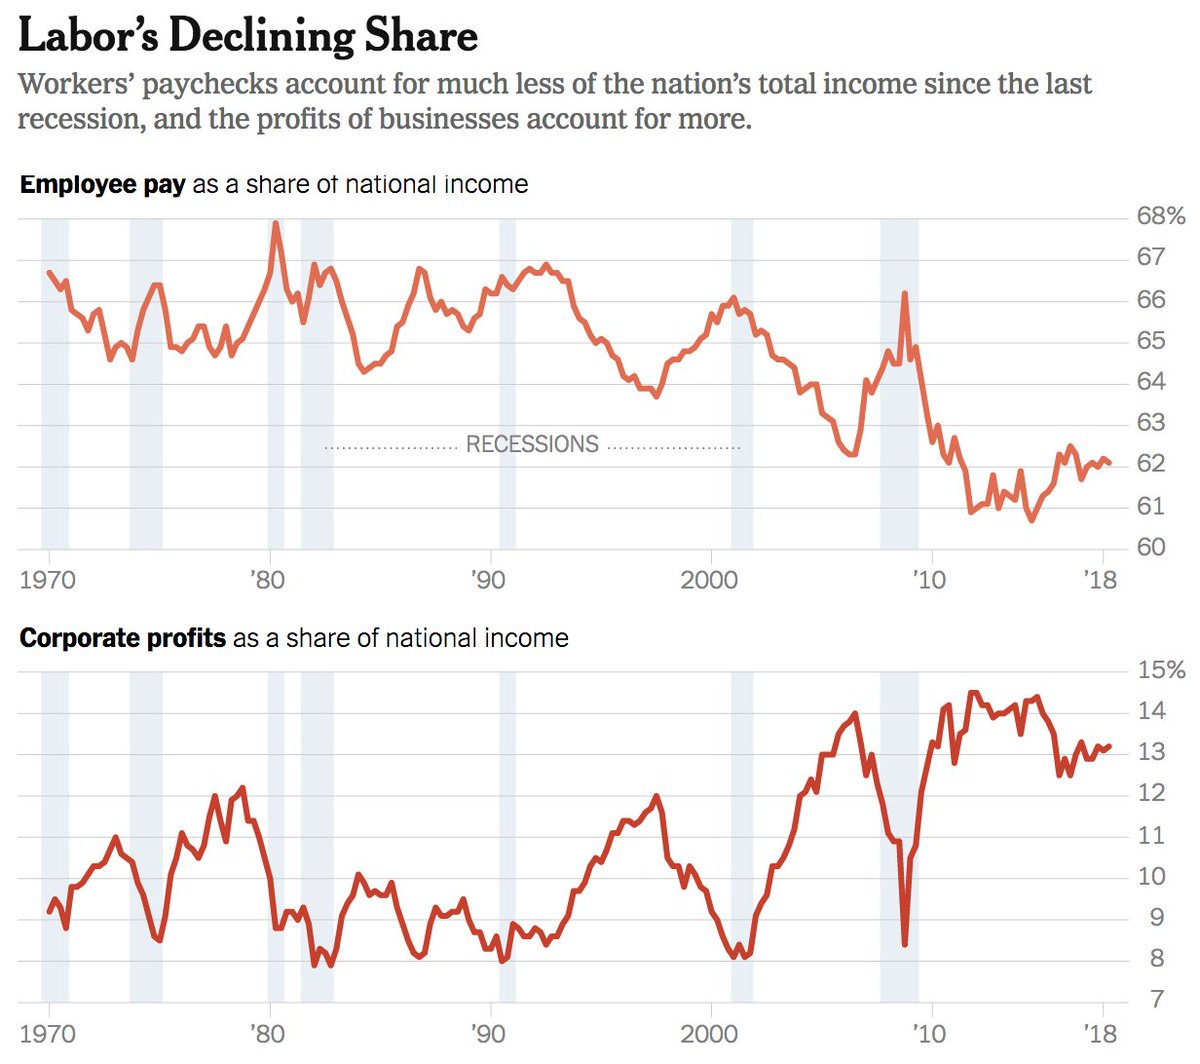 Corporate profits continue to increase, while wages continue to languish. Several causes: 1) Union busting, right-to-work-for-less policies.   2) Outsourcing to low-wage nations. 3) Automation. 4) Cutting back benefits.  5) More contract employees.